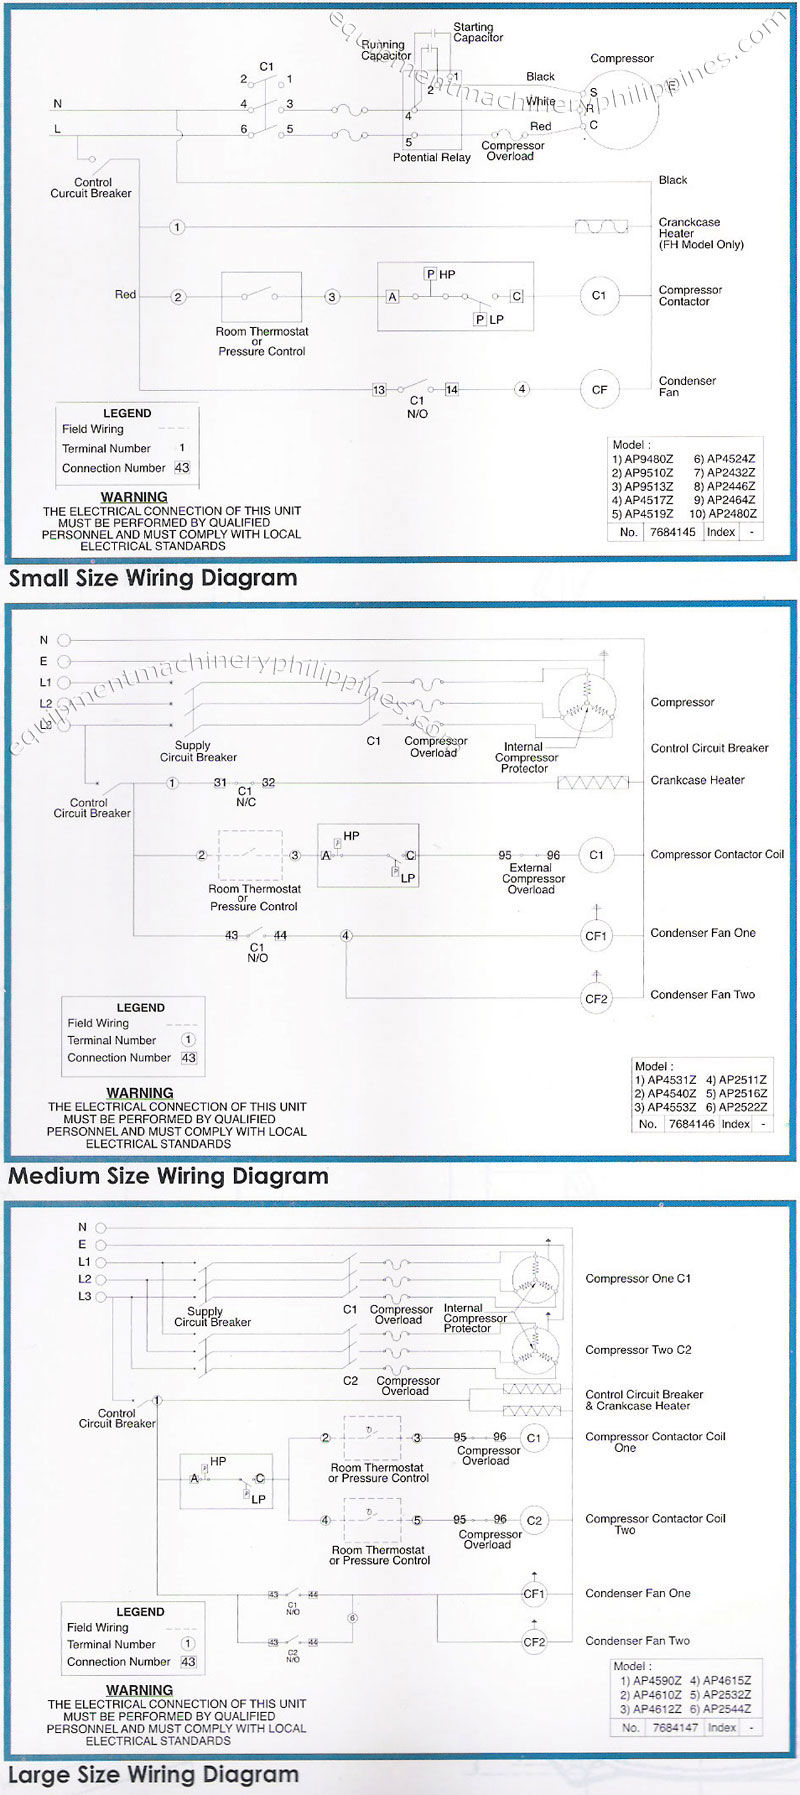 05_Tecumseh_Packaged_Refrigeration_Condensing_Unit_Wiring_Diagram tecumseh packaged refrigeration condensing unit wiring diagram condensing unit wiring diagram at crackthecode.co